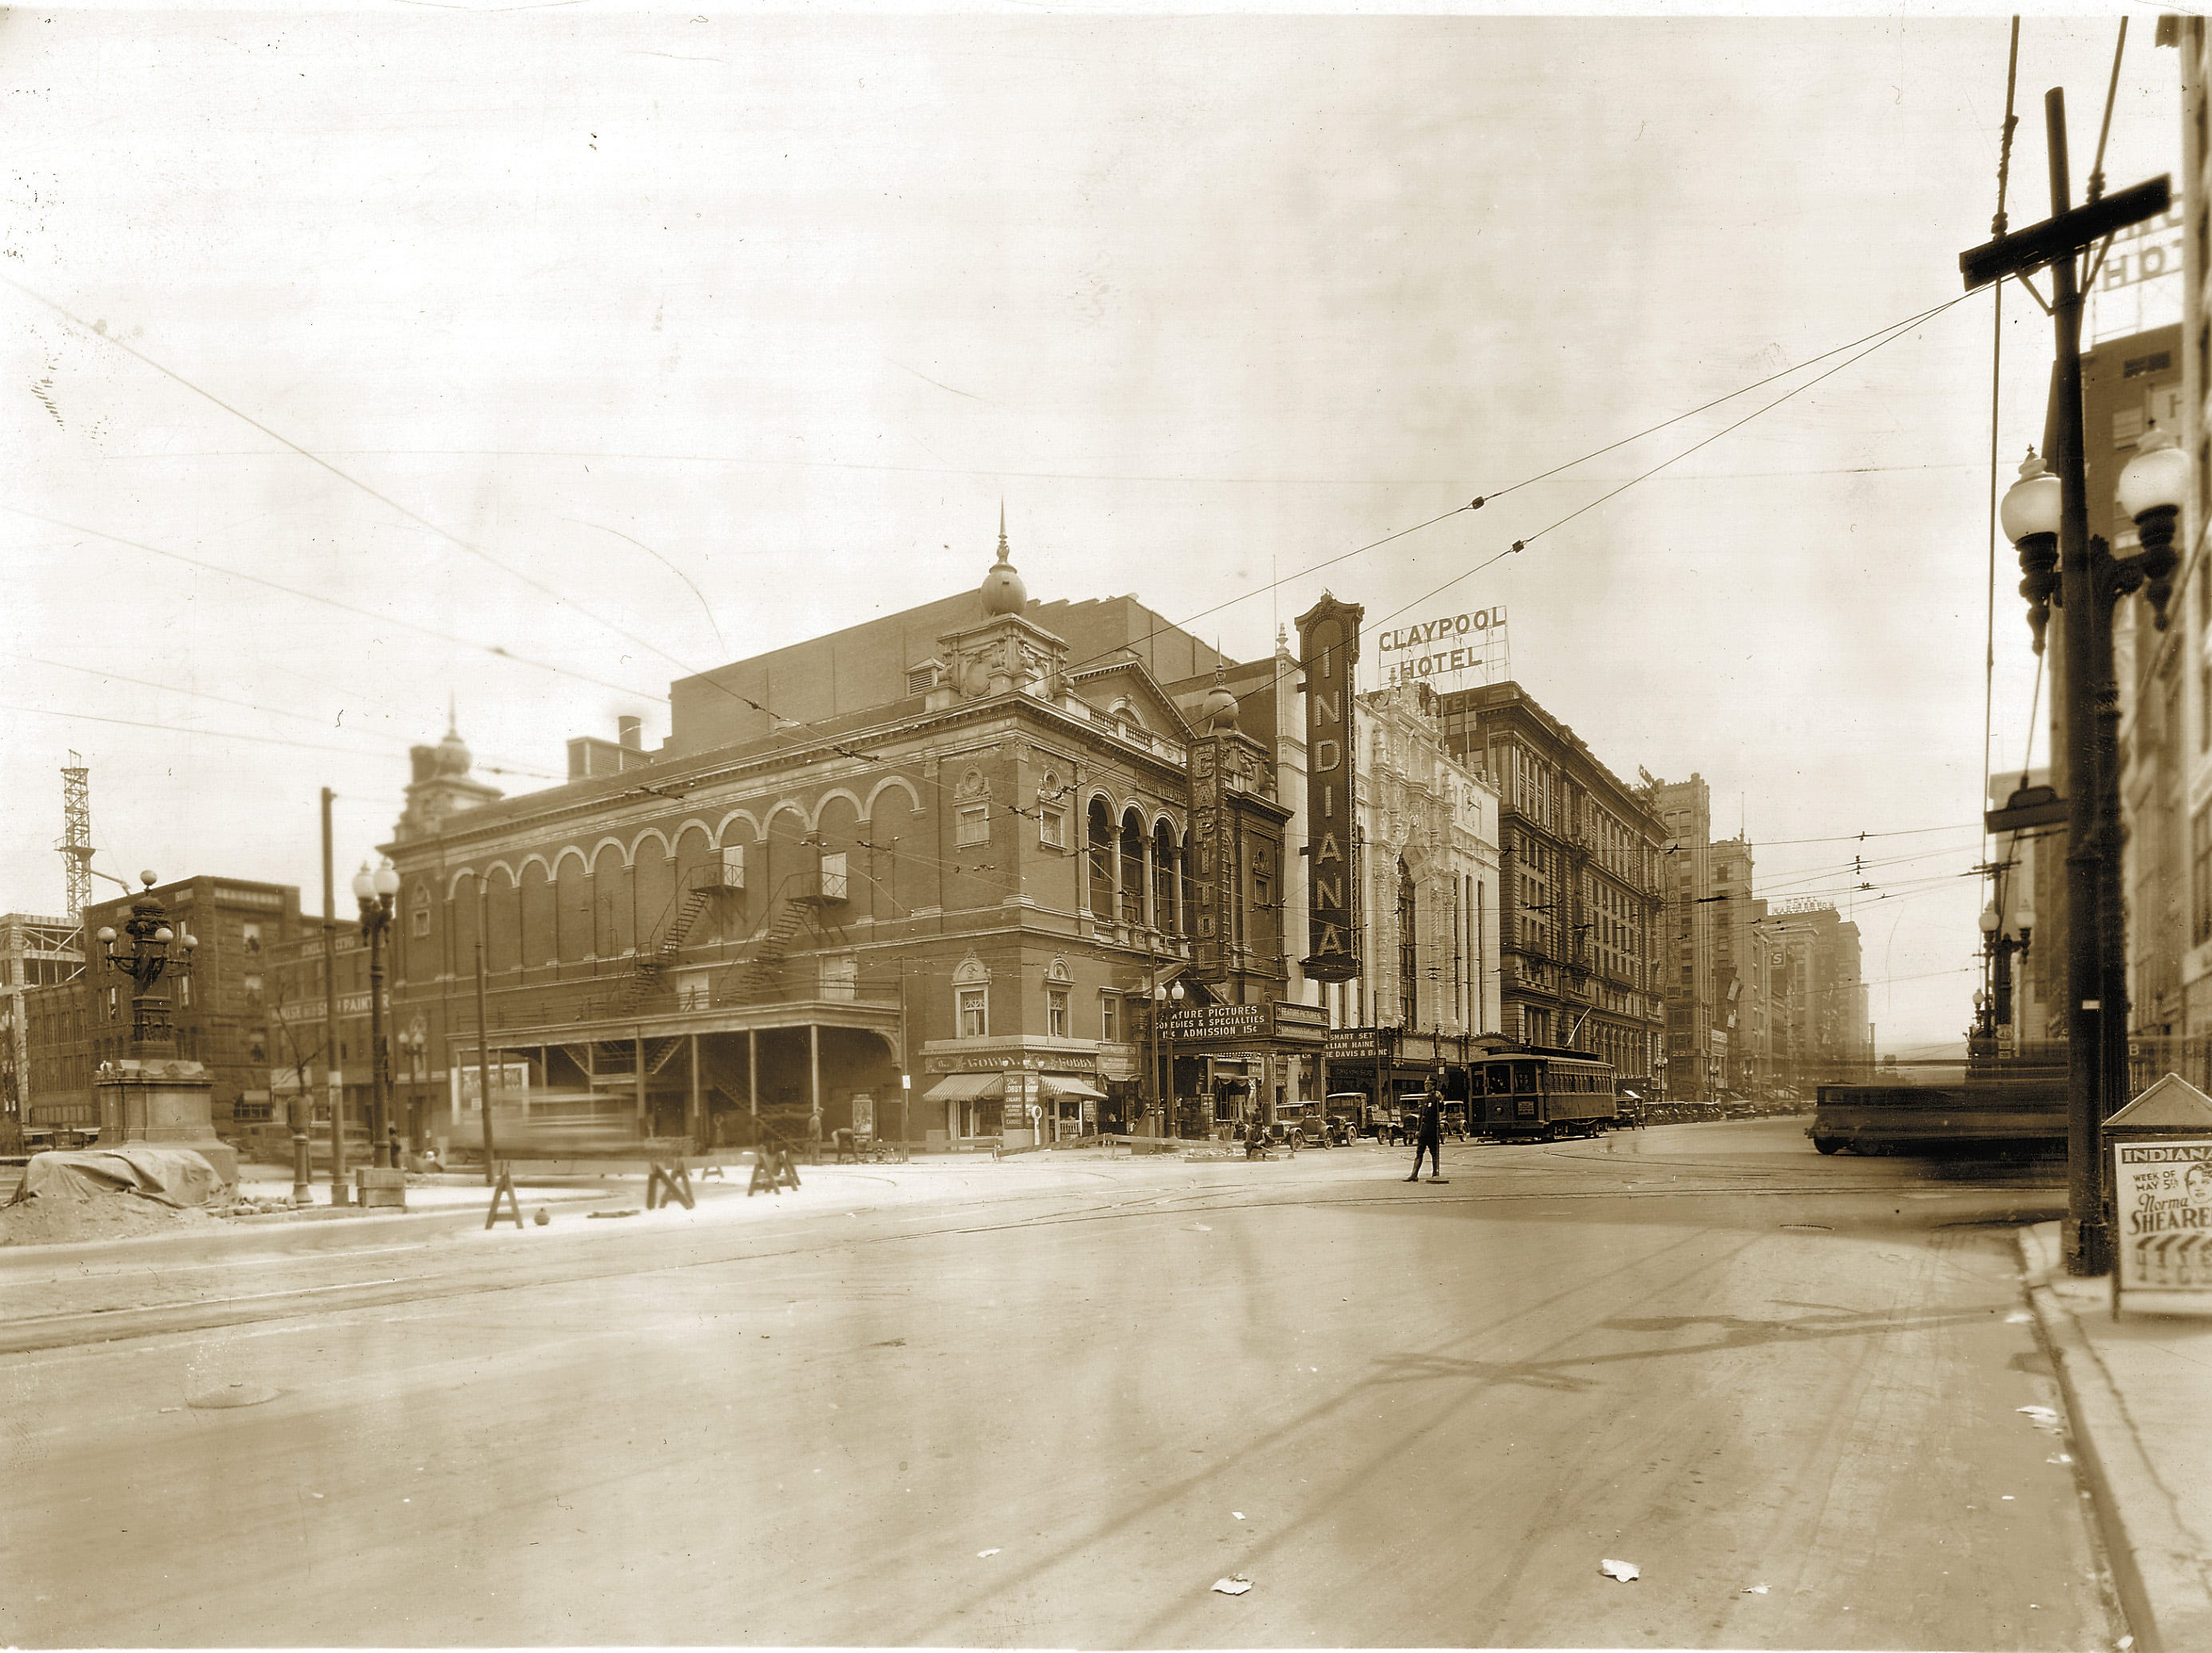 This is a view of Washington Street looking east from Capitol in early 1929. The Capitol Theater (left center) was on the N.E. corner adjoined by the Indiana Theater (white facade). The Claypool Hotel was next to that situated on the N.W. corner of Illinois and Washington Streets